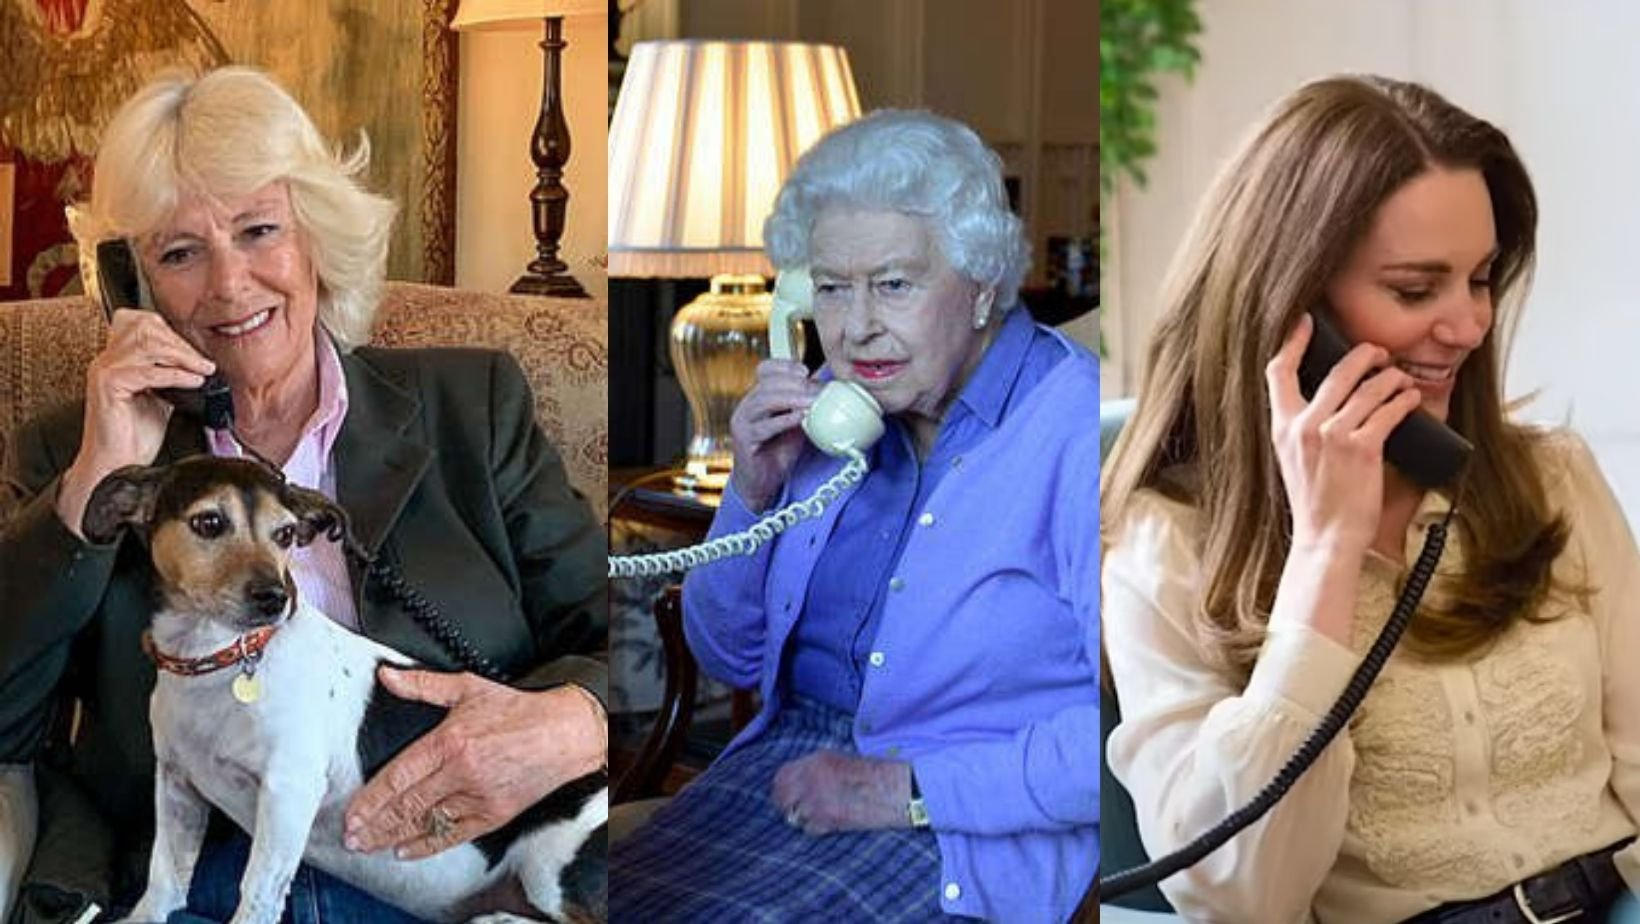 1 82.jpg?resize=412,232 - The Reason Why The Royal Family Still Use Corded Landline Phones Will Make You Question Your Life Choices